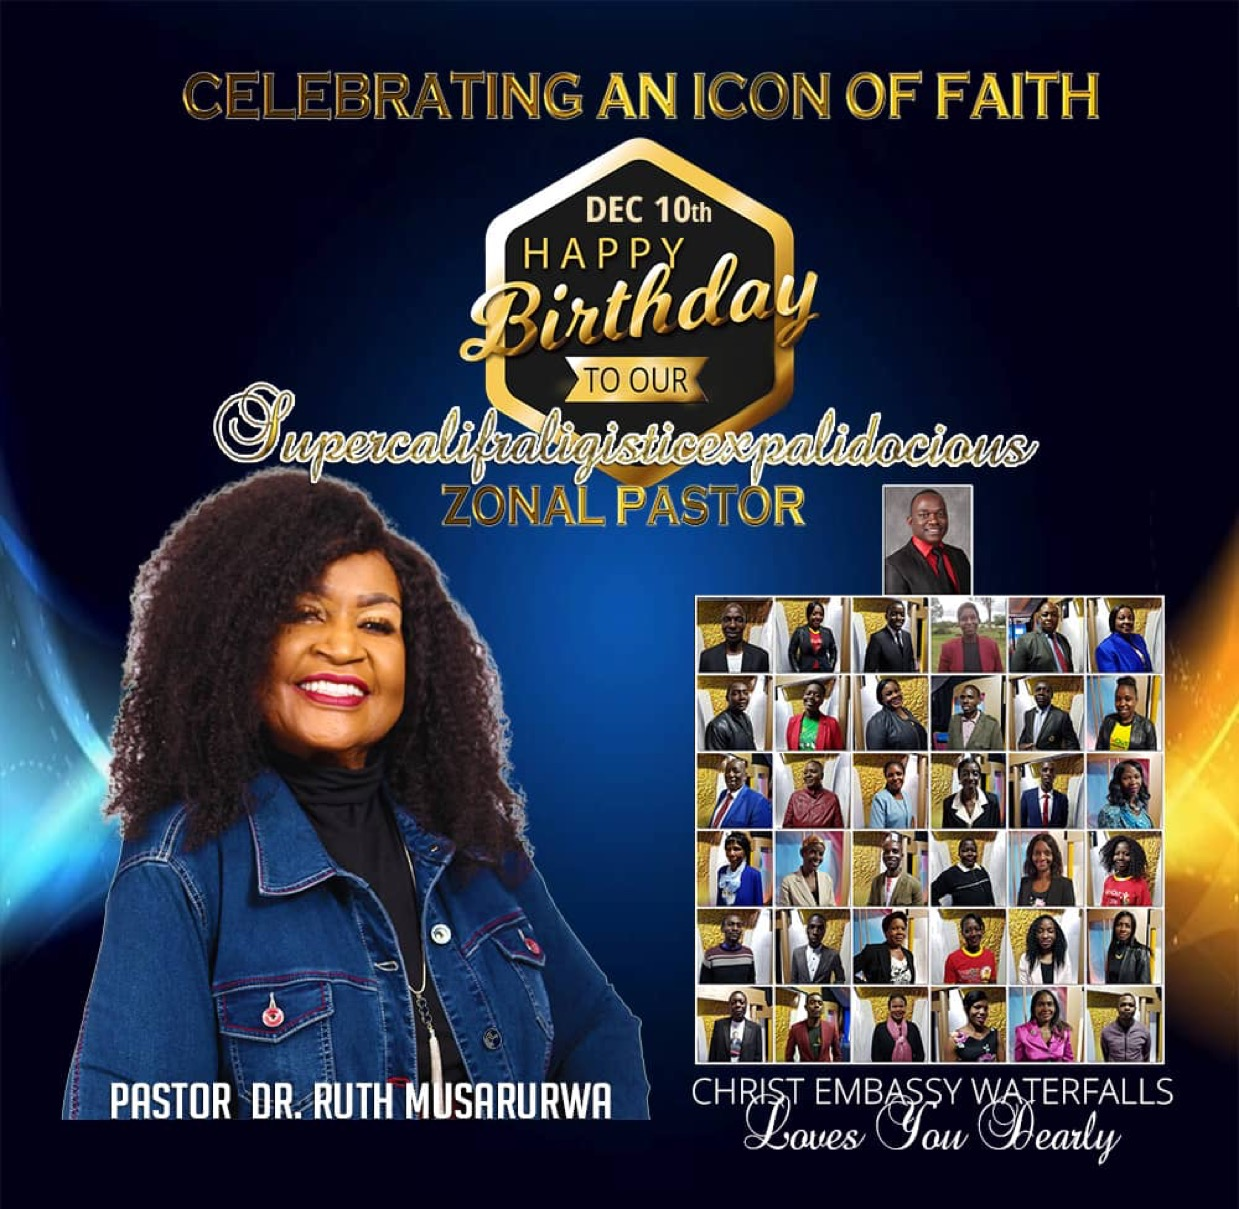 Celebrating our highly esteemed Zonal